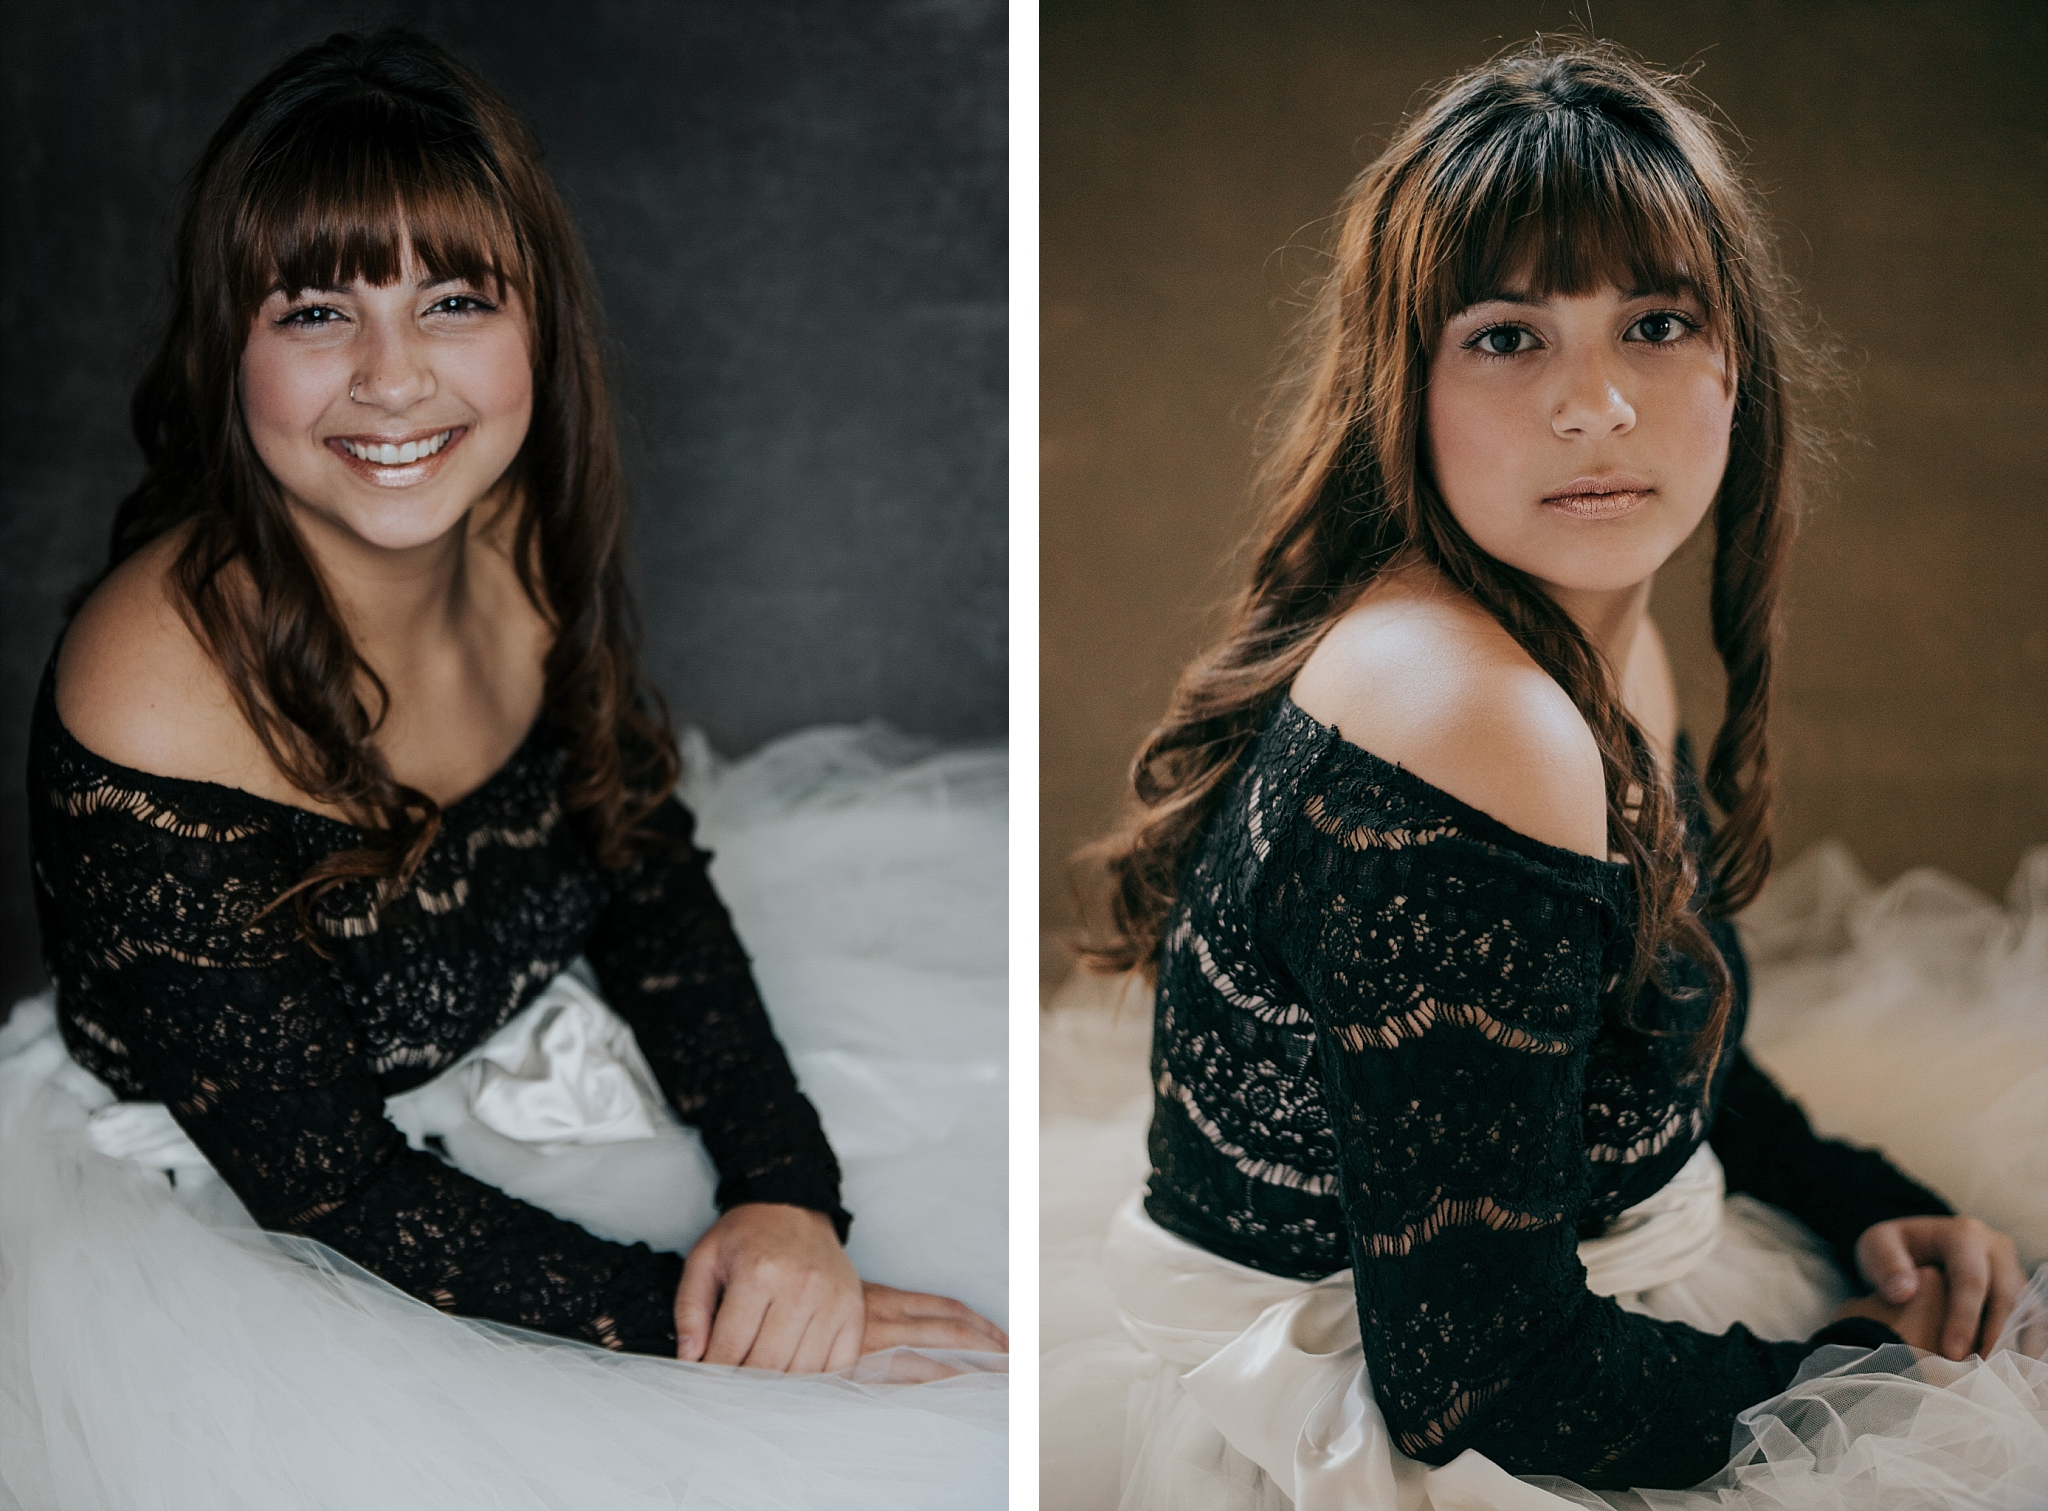 Sibling Portraits - Brother + Sister | Stephanie Acar, Photographer